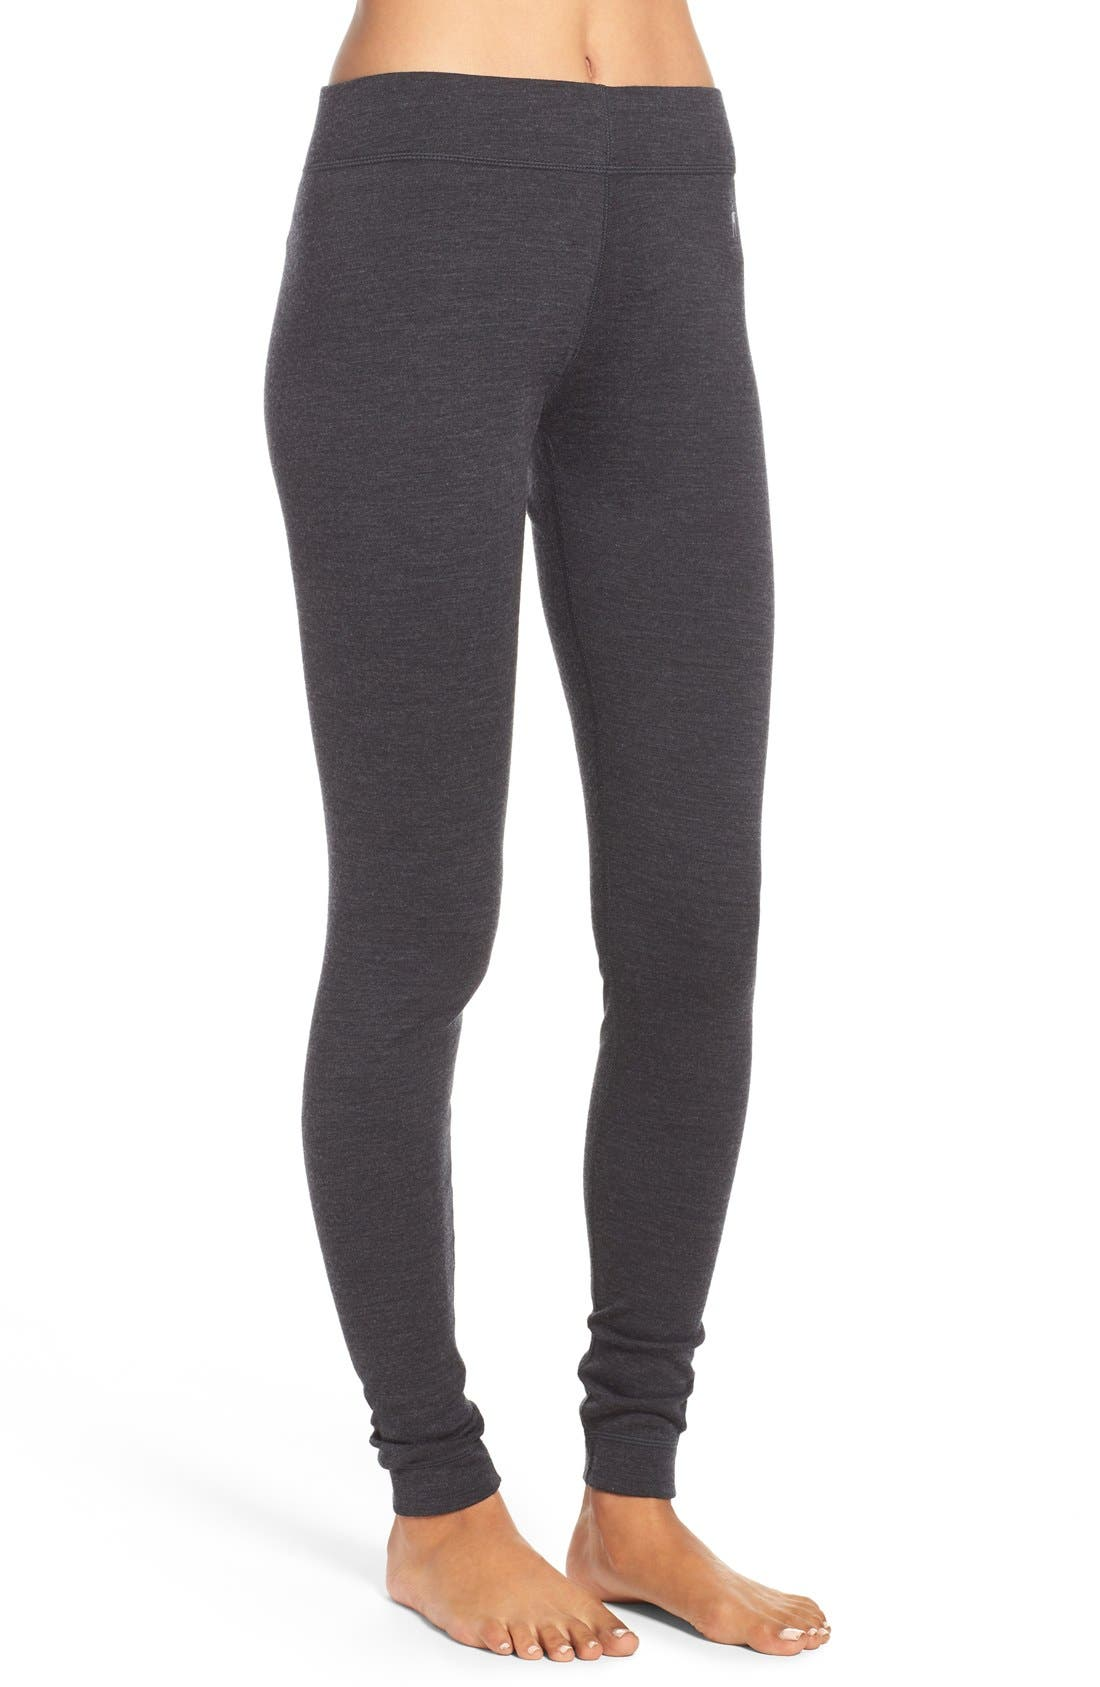 'NTS Mid 250' Bottoms,                             Alternate thumbnail 3, color,                             Charcoal Heather